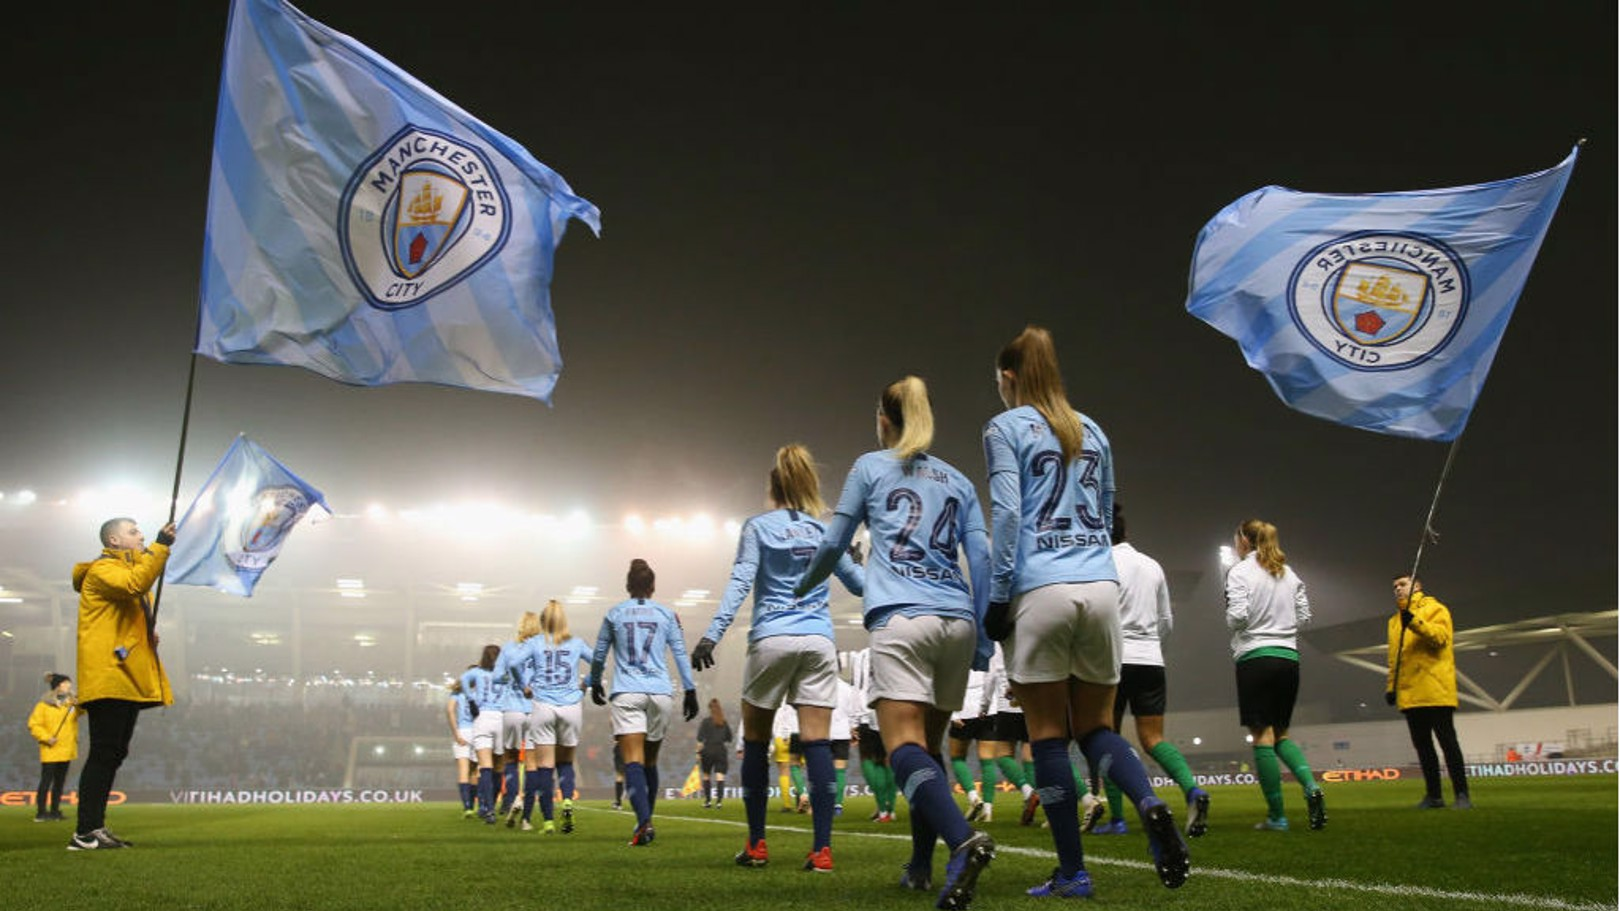 City learn Conti Cup semi-final opponents